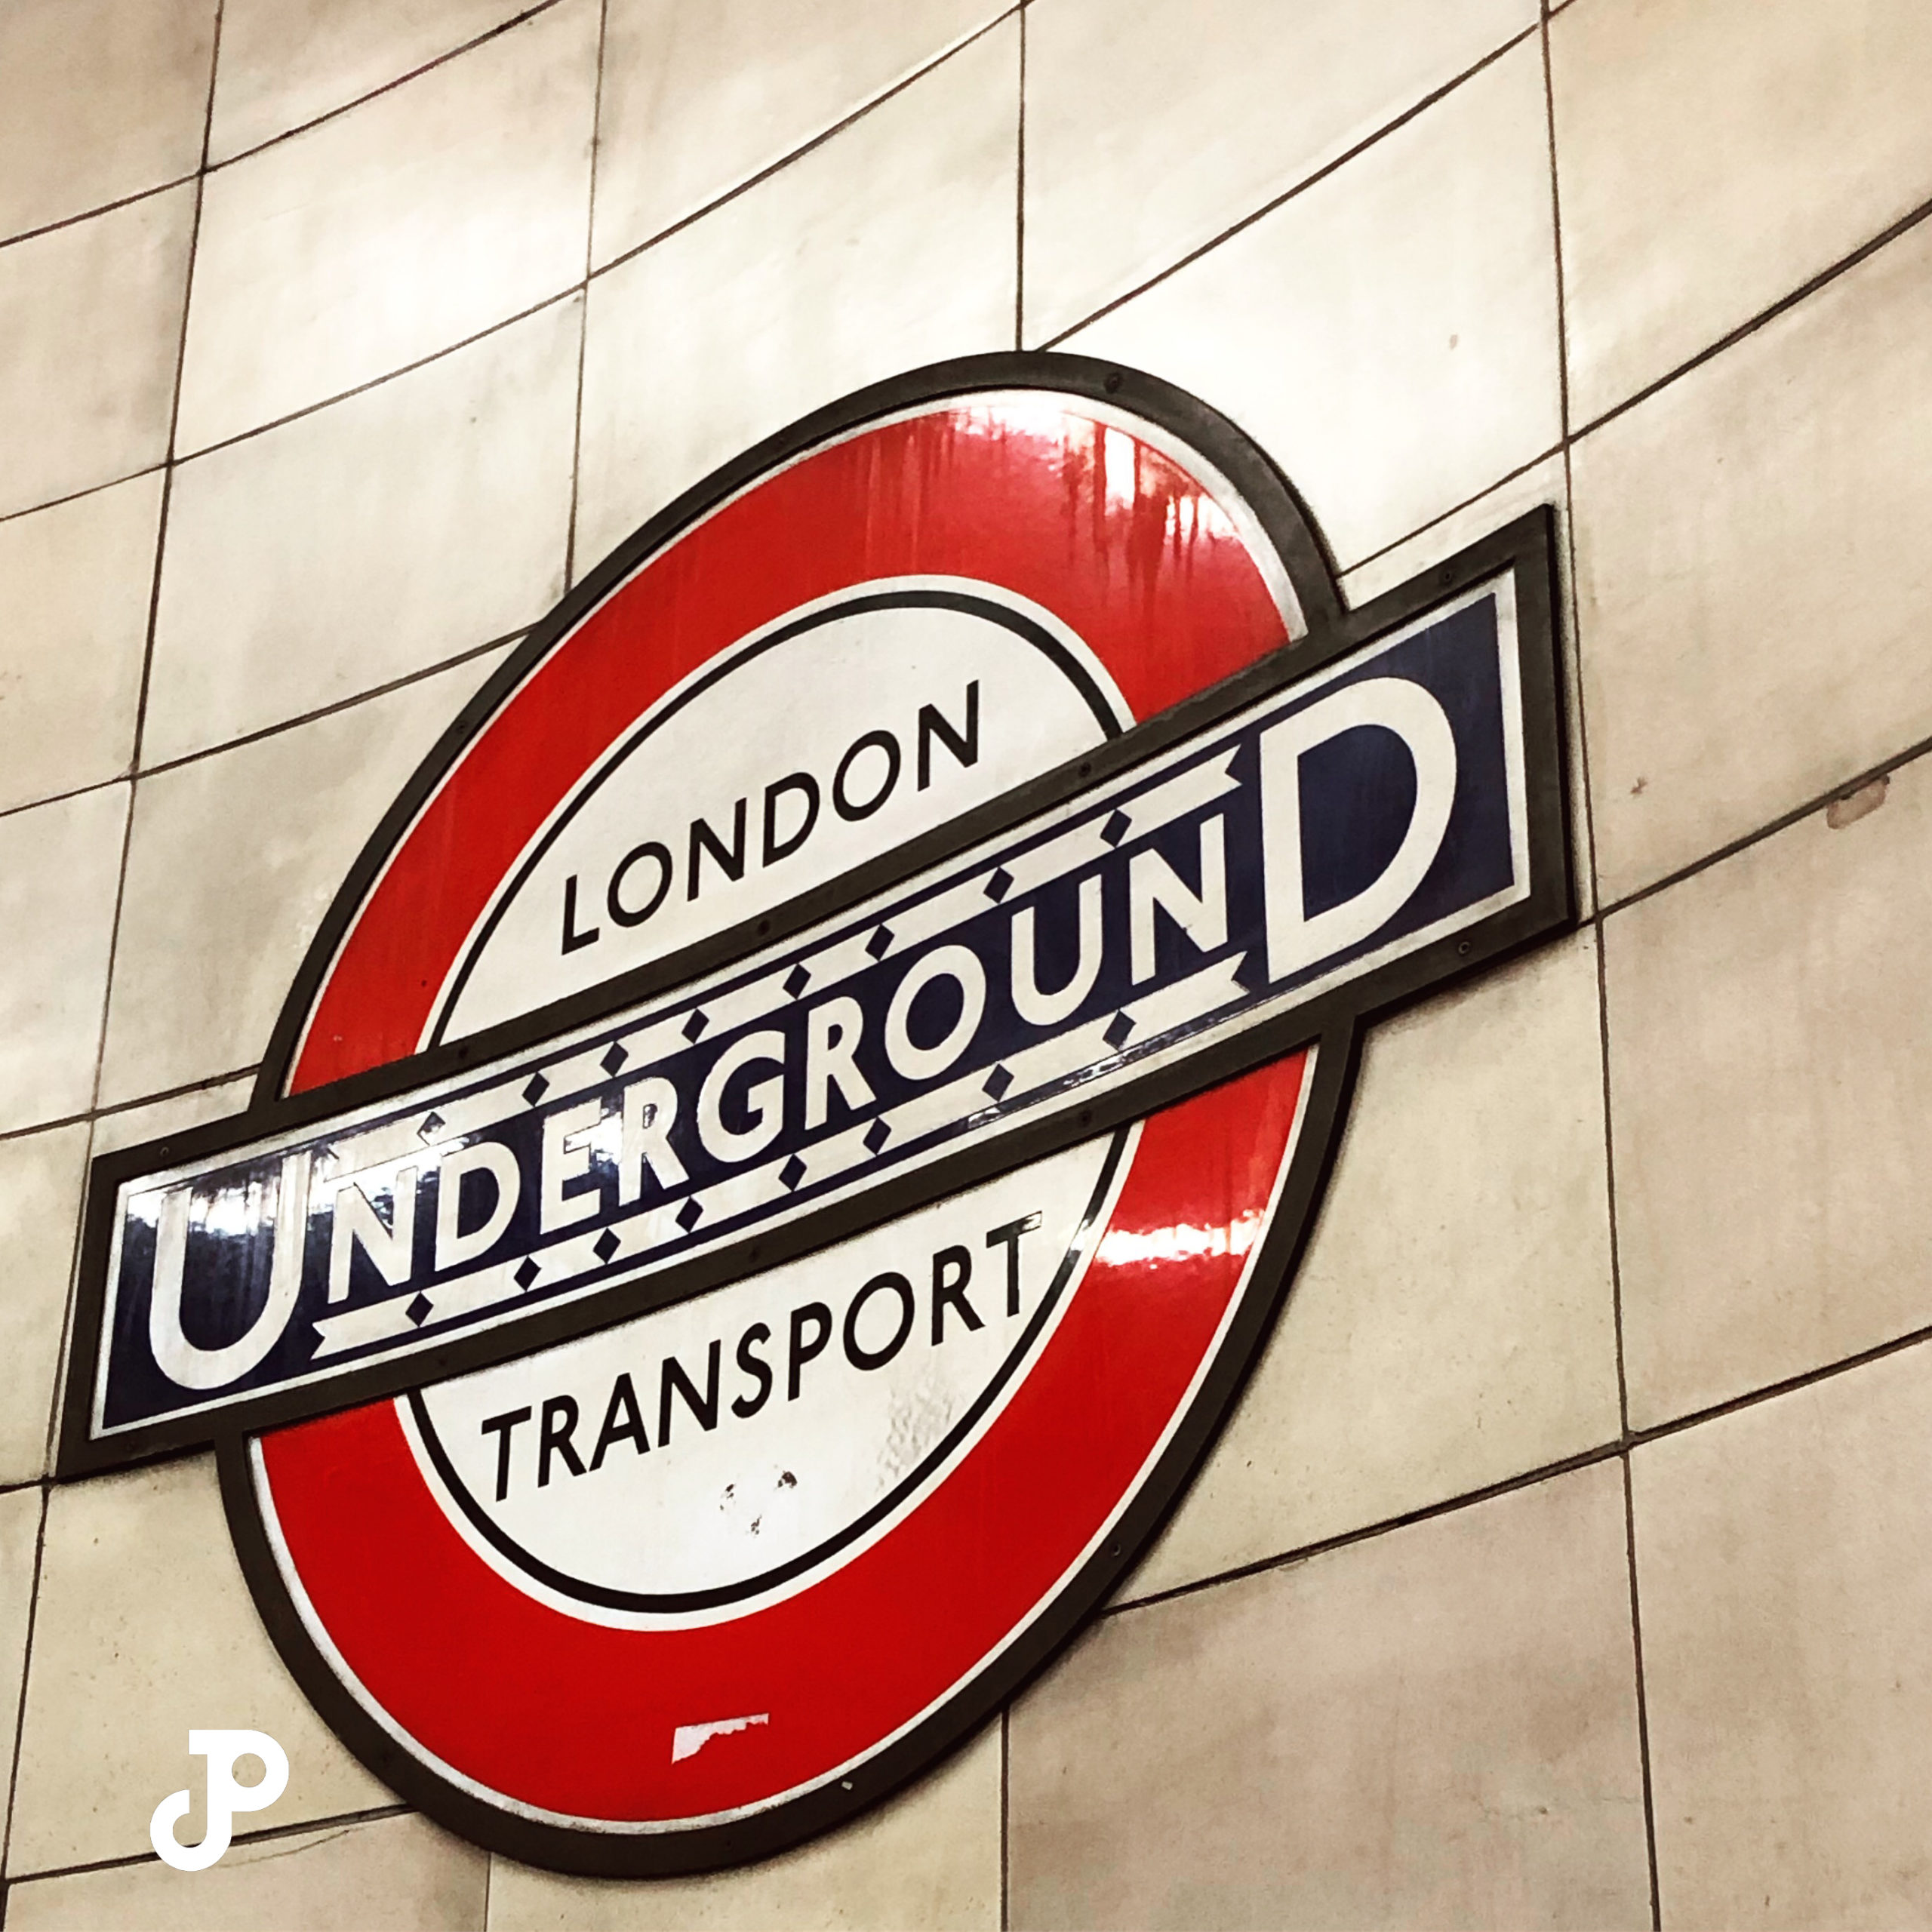 A London Underground Transport Sign